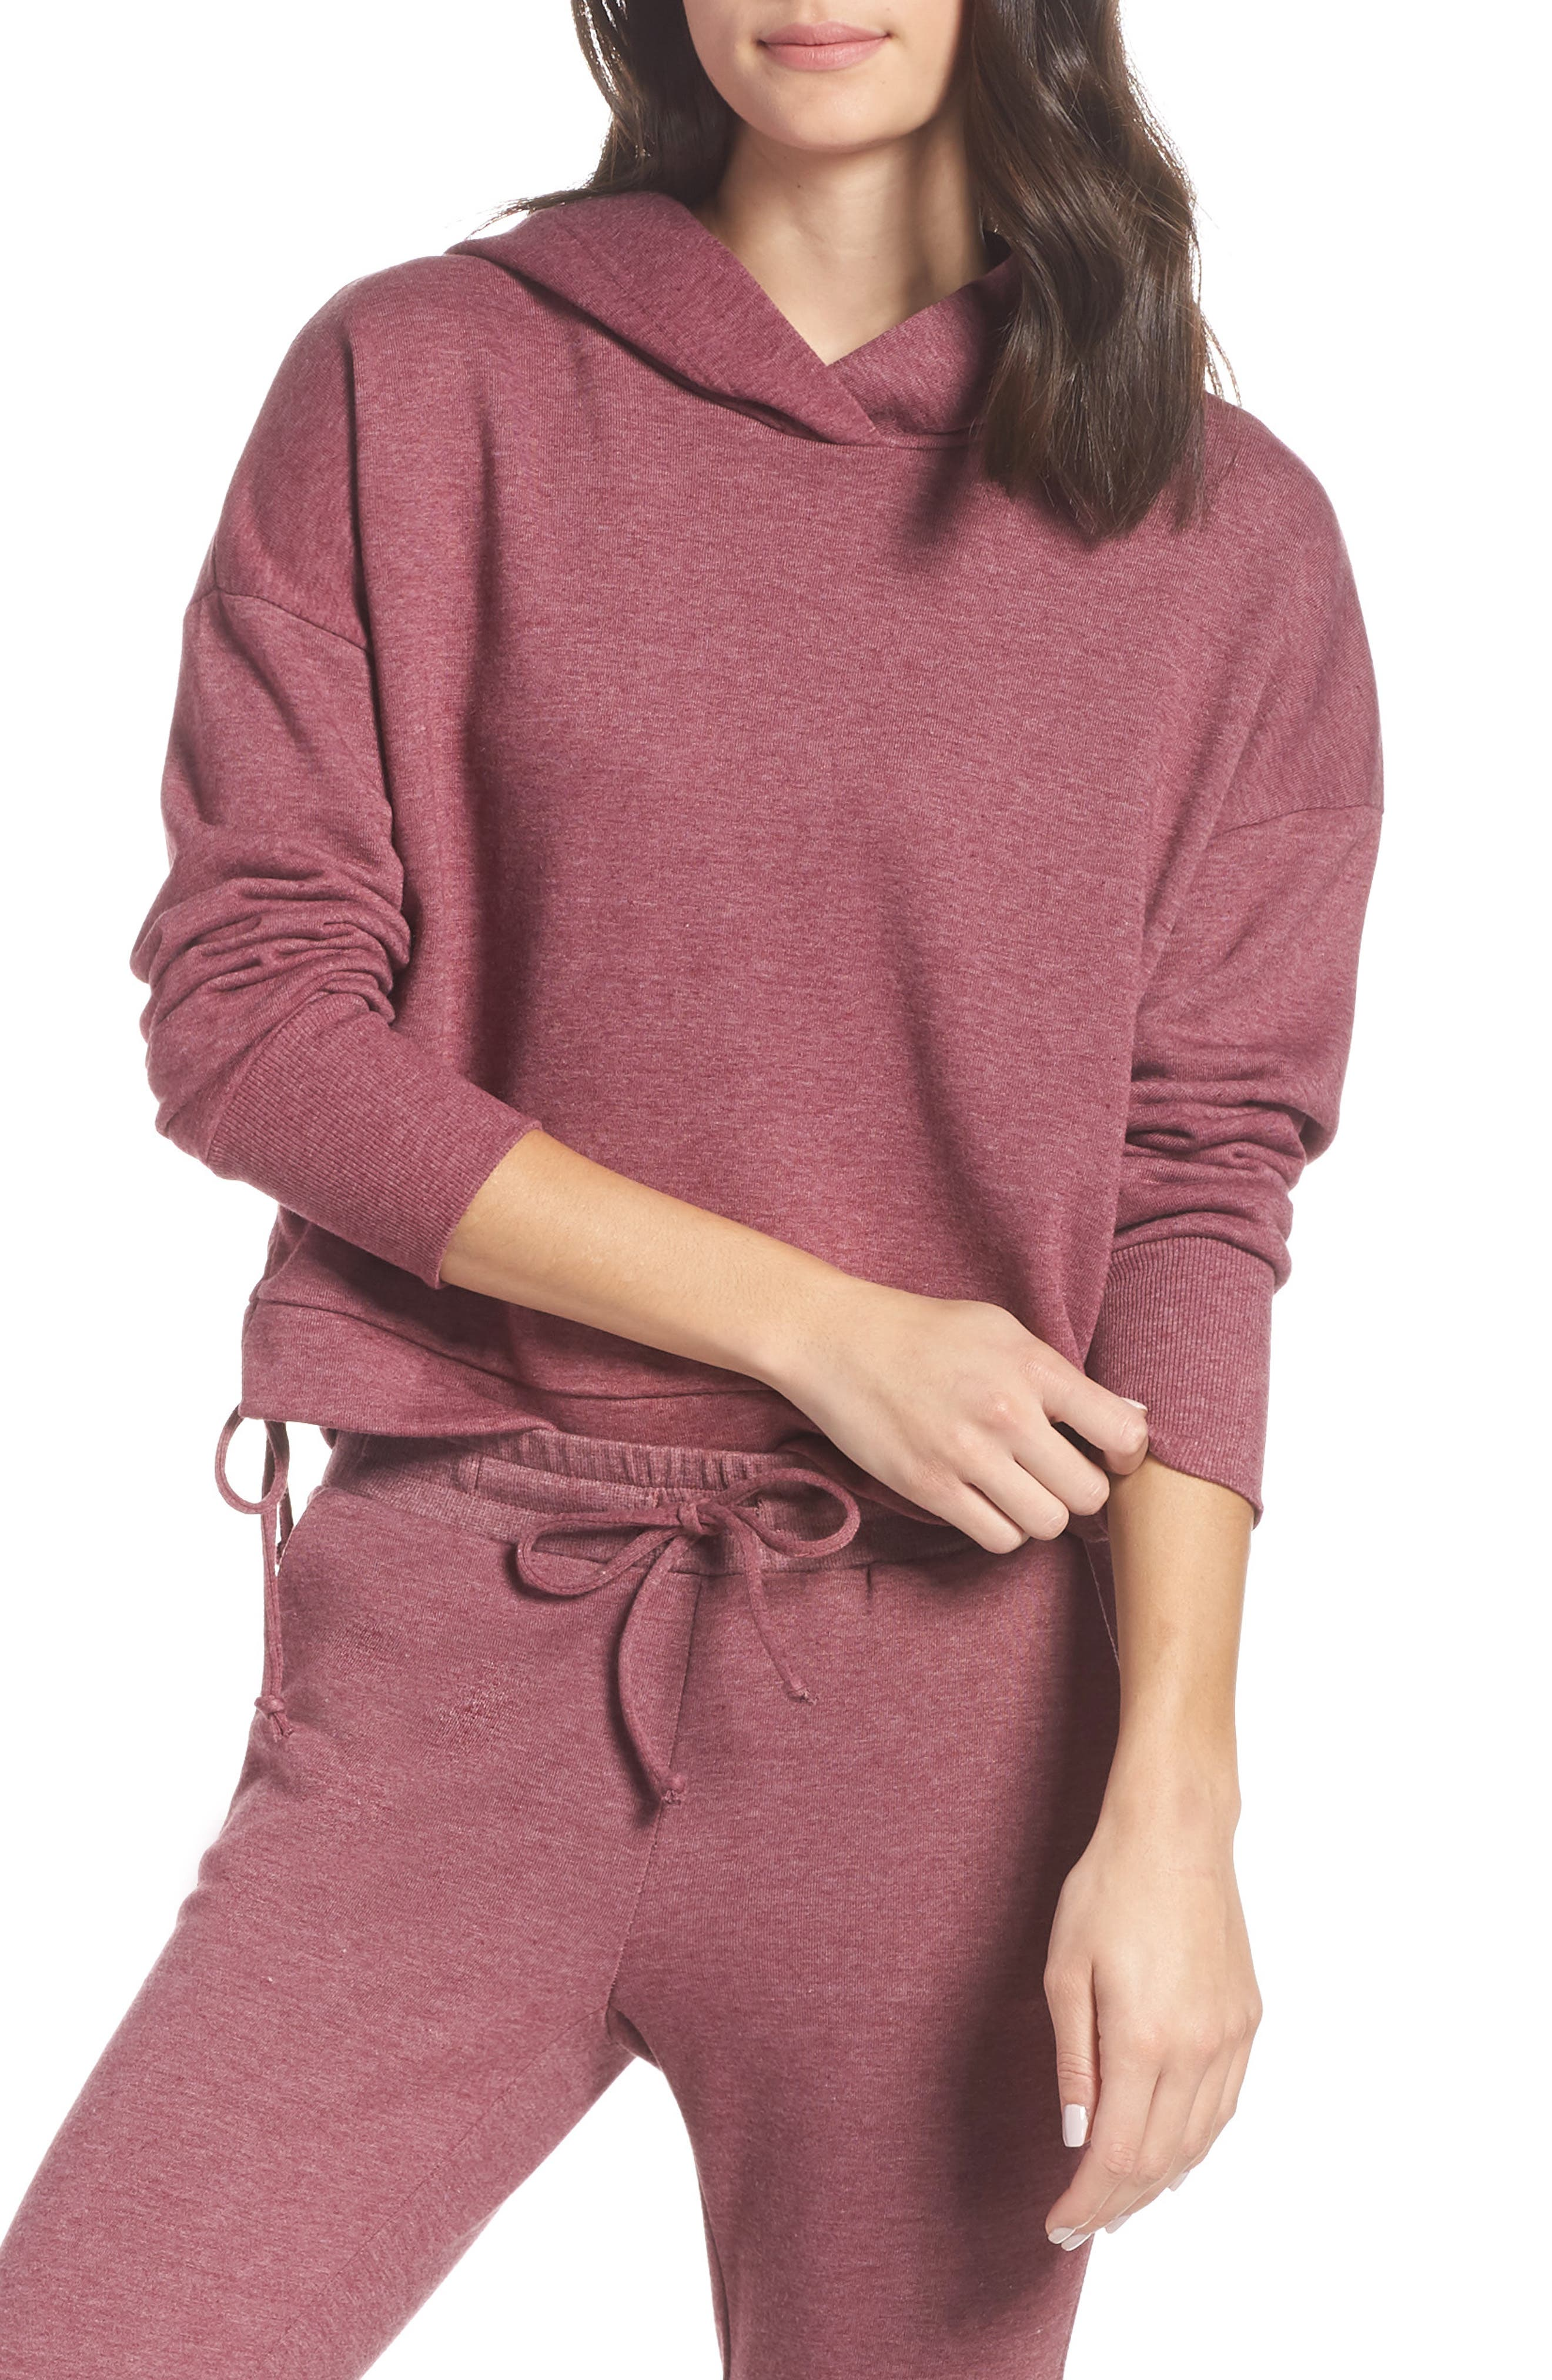 Whip It Hoodie,                             Main thumbnail 1, color,                             MULBERRY HEATHER